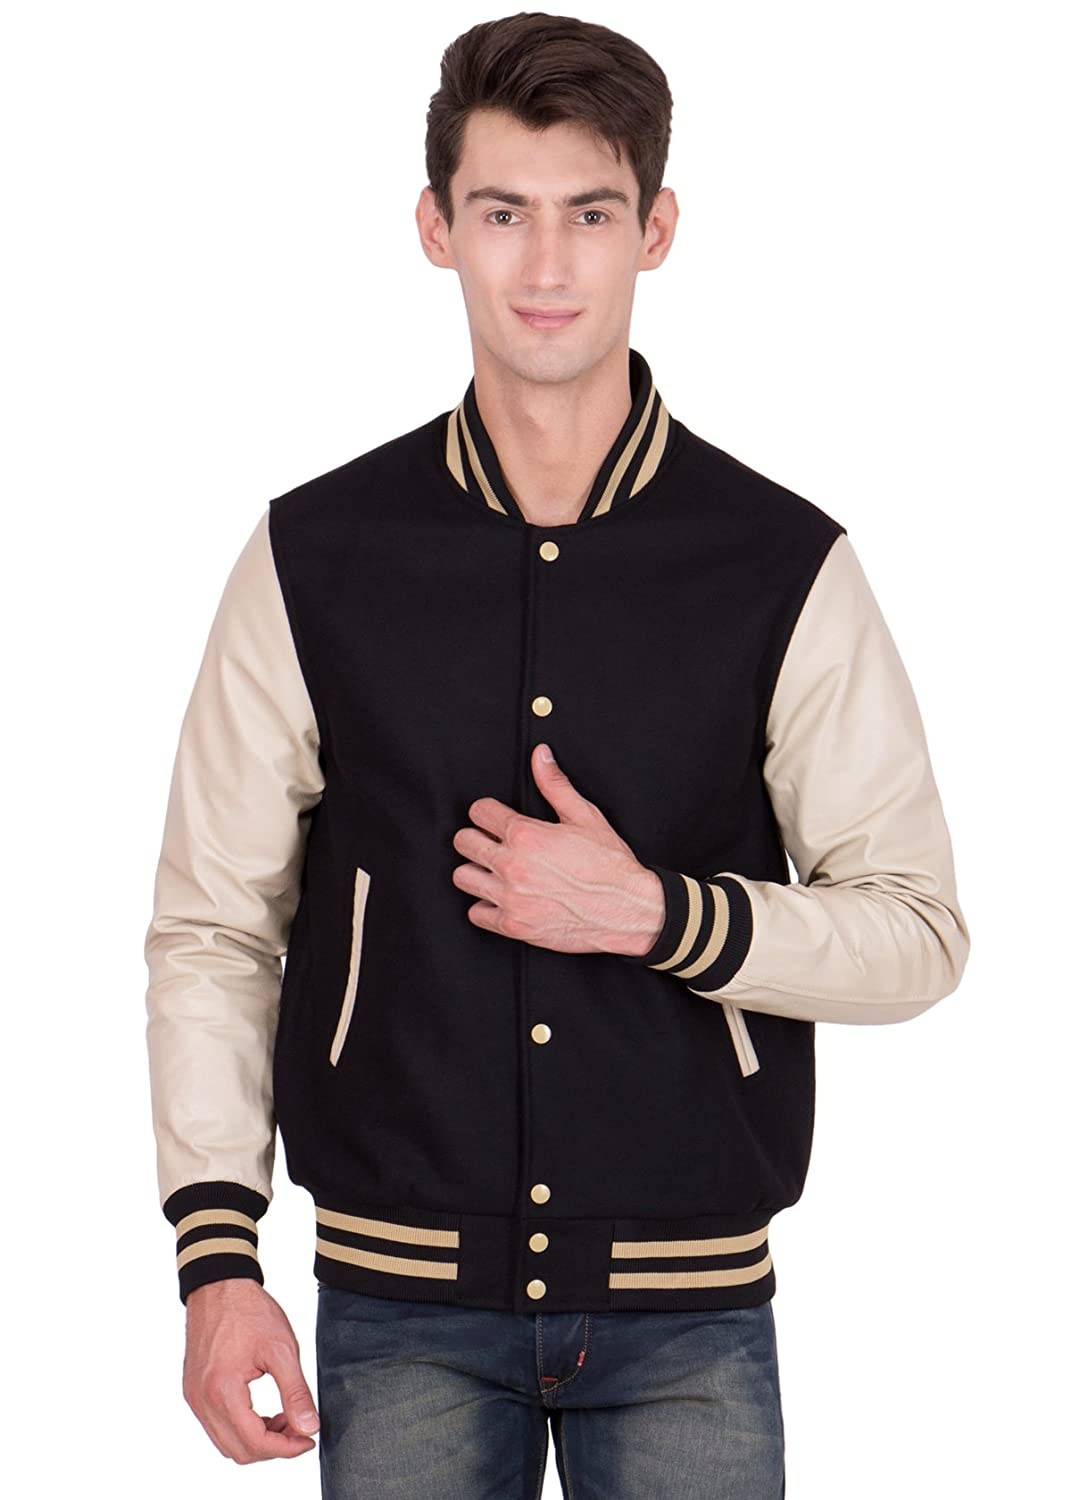 Caliber Apparels Vegas Gold Leather Sleeves & Black Wool Body Varsity Jacket-Men L CAPL302L